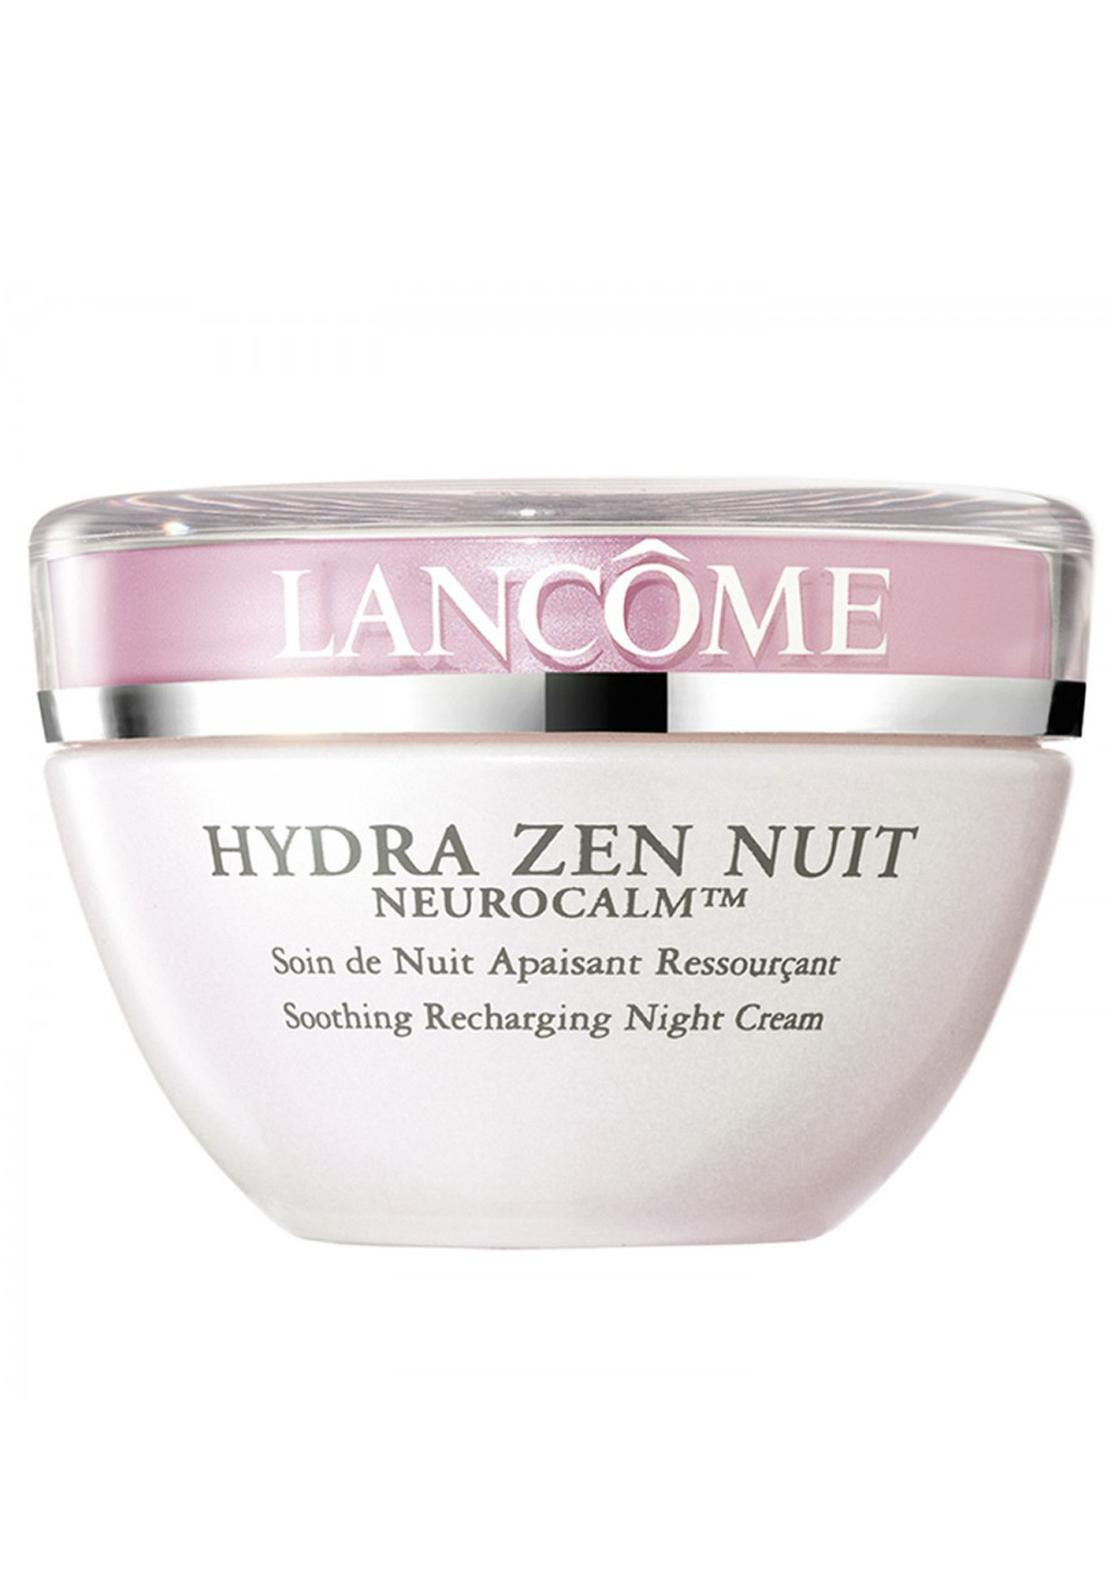 Lancome Hydra Zen Nuit Neurocalm Night Cream 50ml Lancome